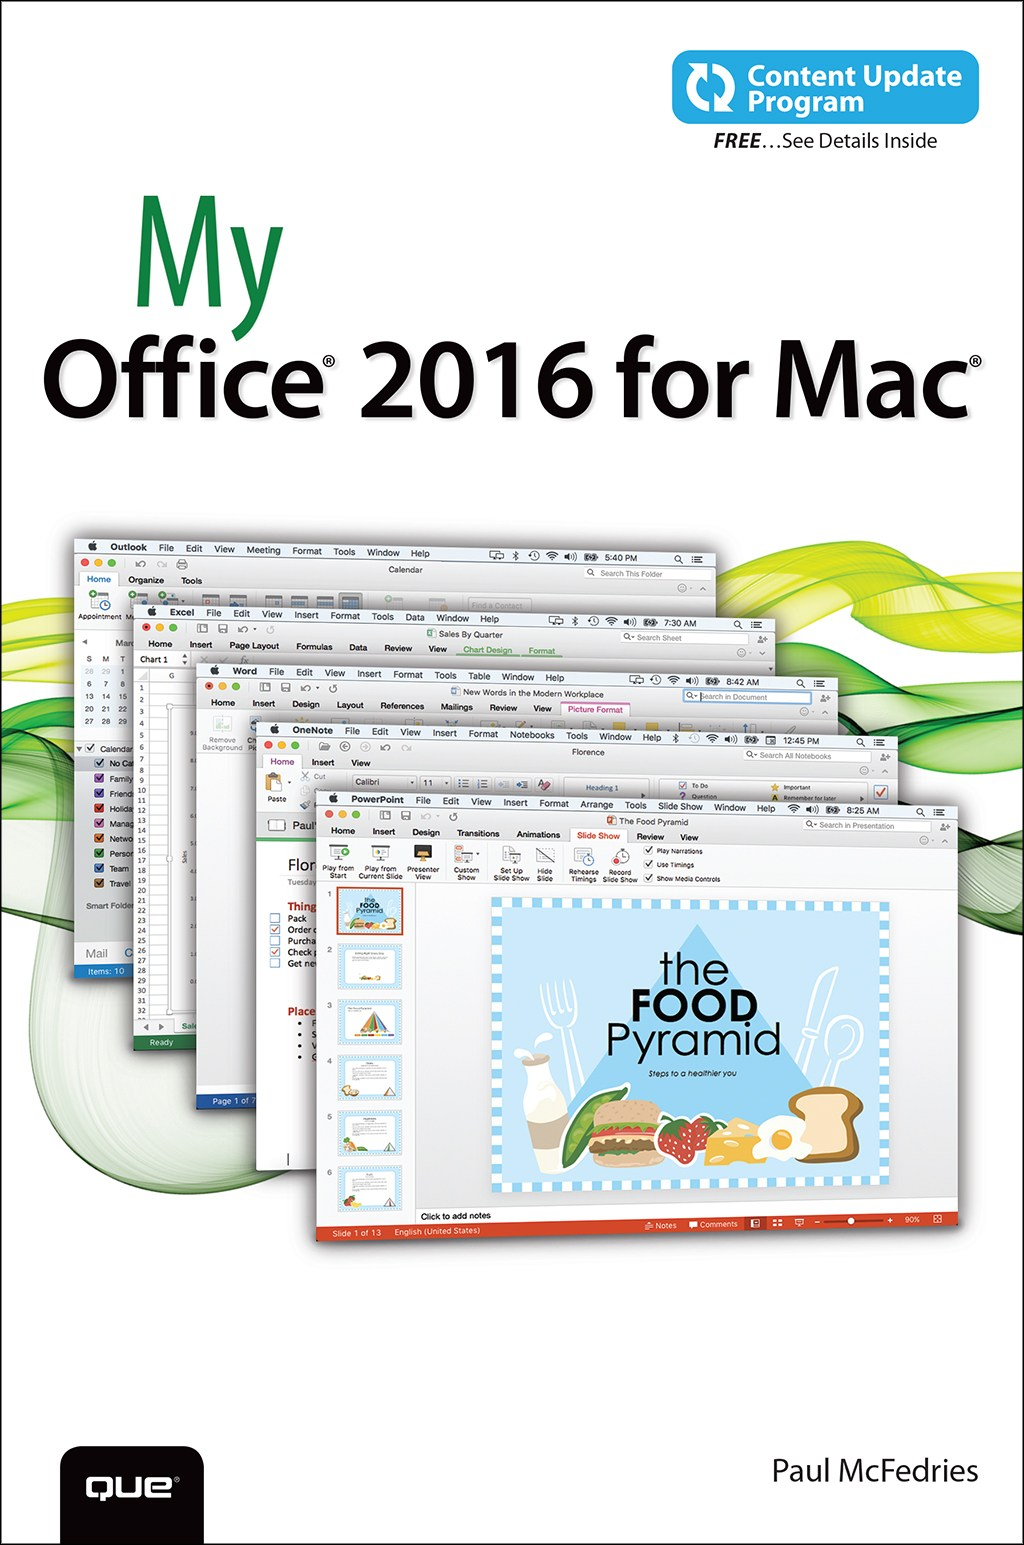 My Office 2016 for Mac  (includes Content Update Program)